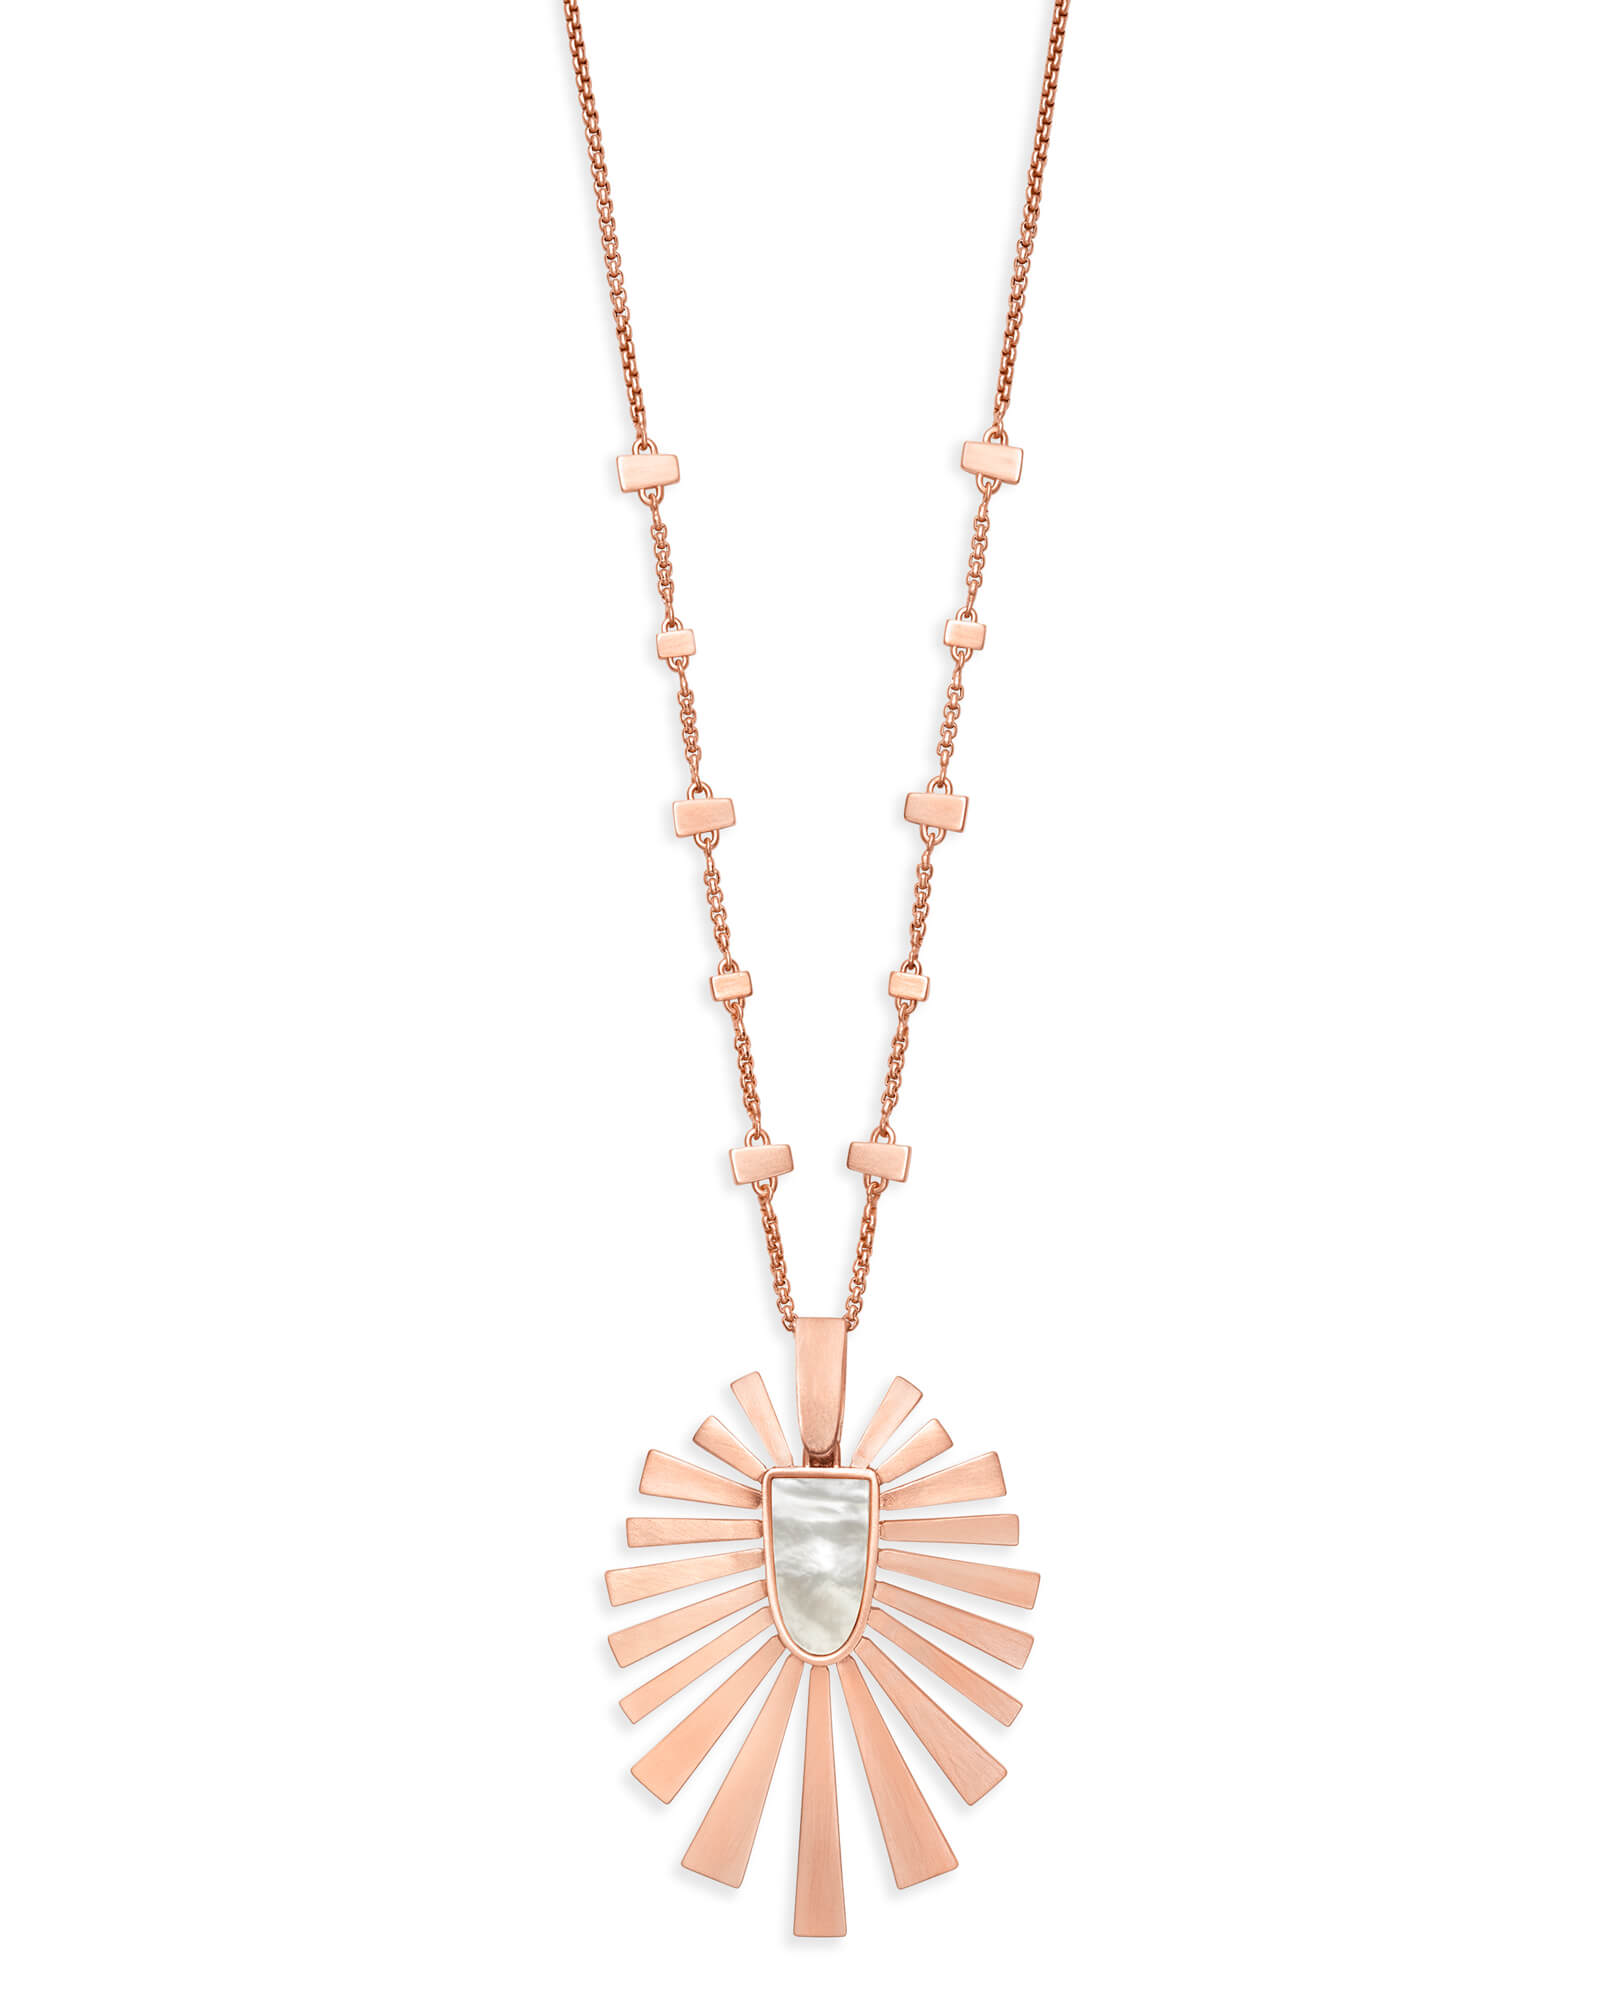 Paula Long Pendant Necklace in Rose Gold